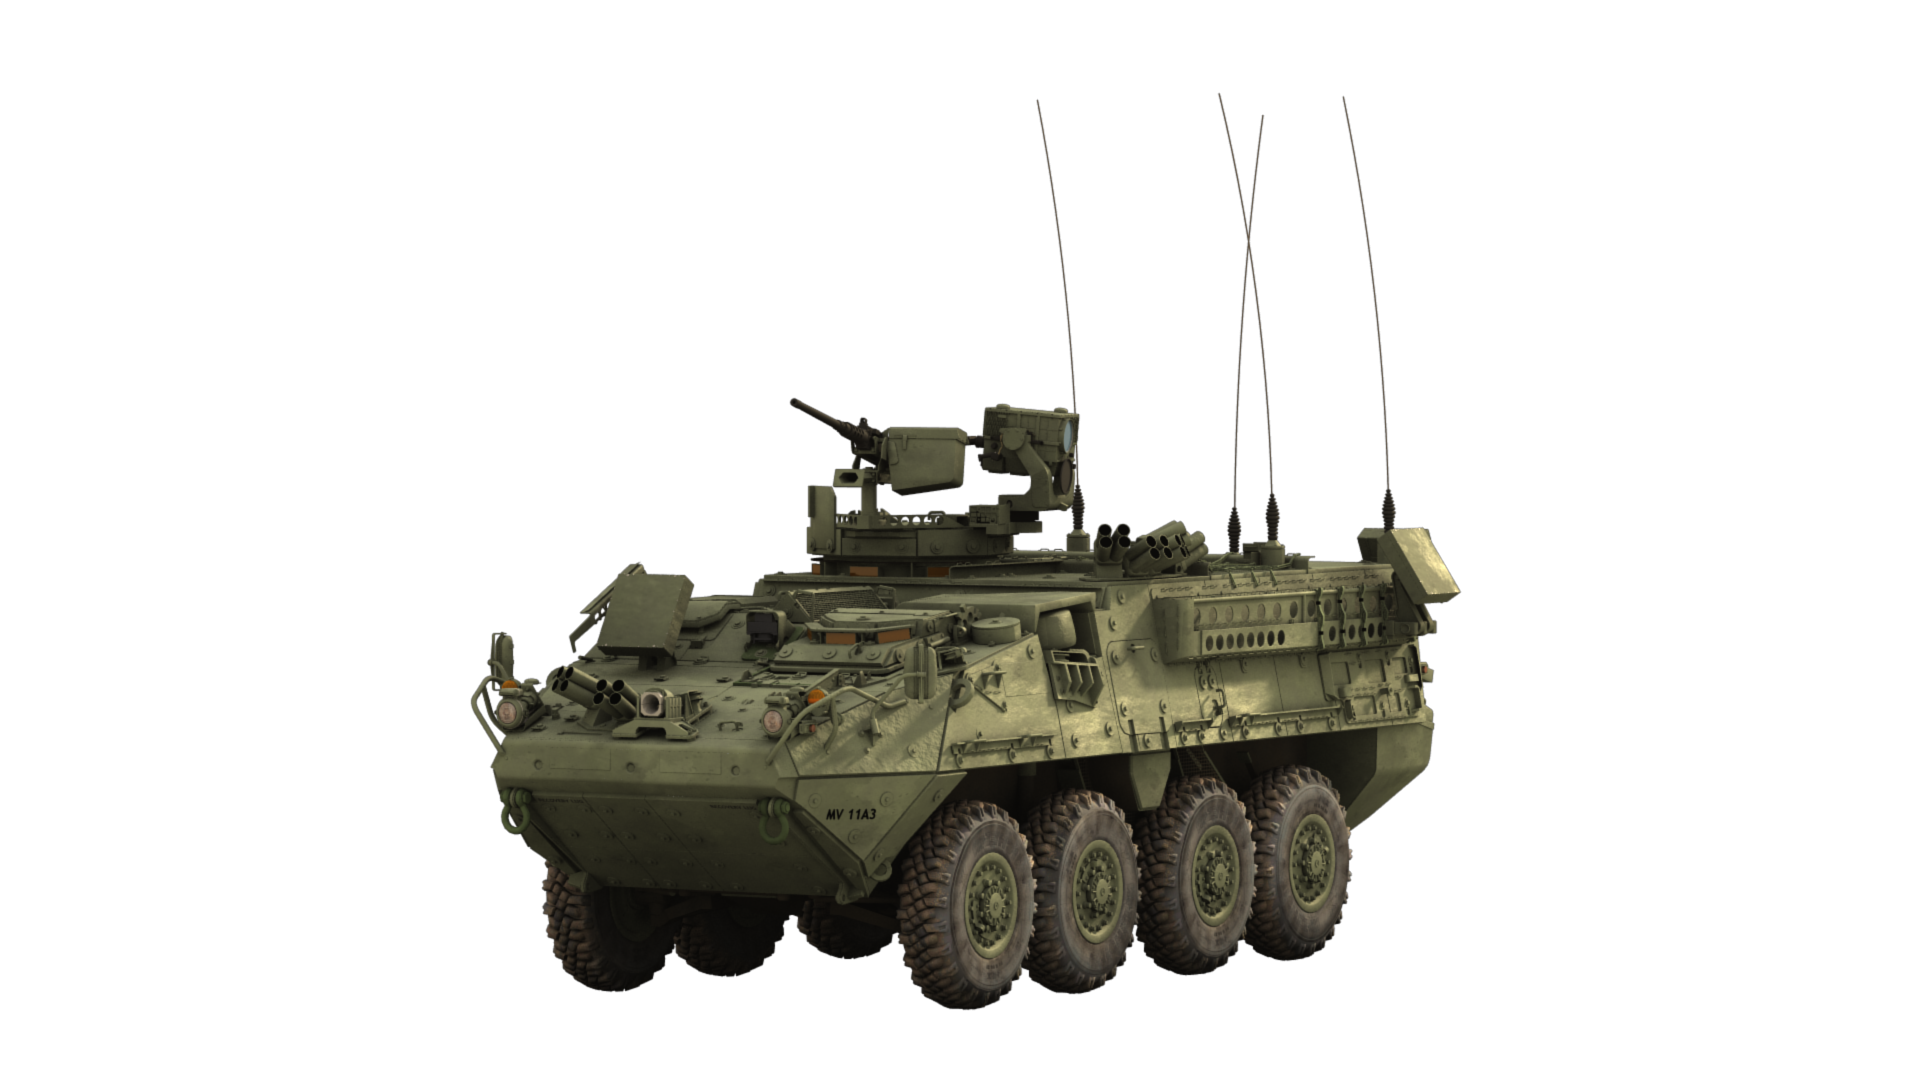 SkyChaser on-the-move radar mounted on Stryker system